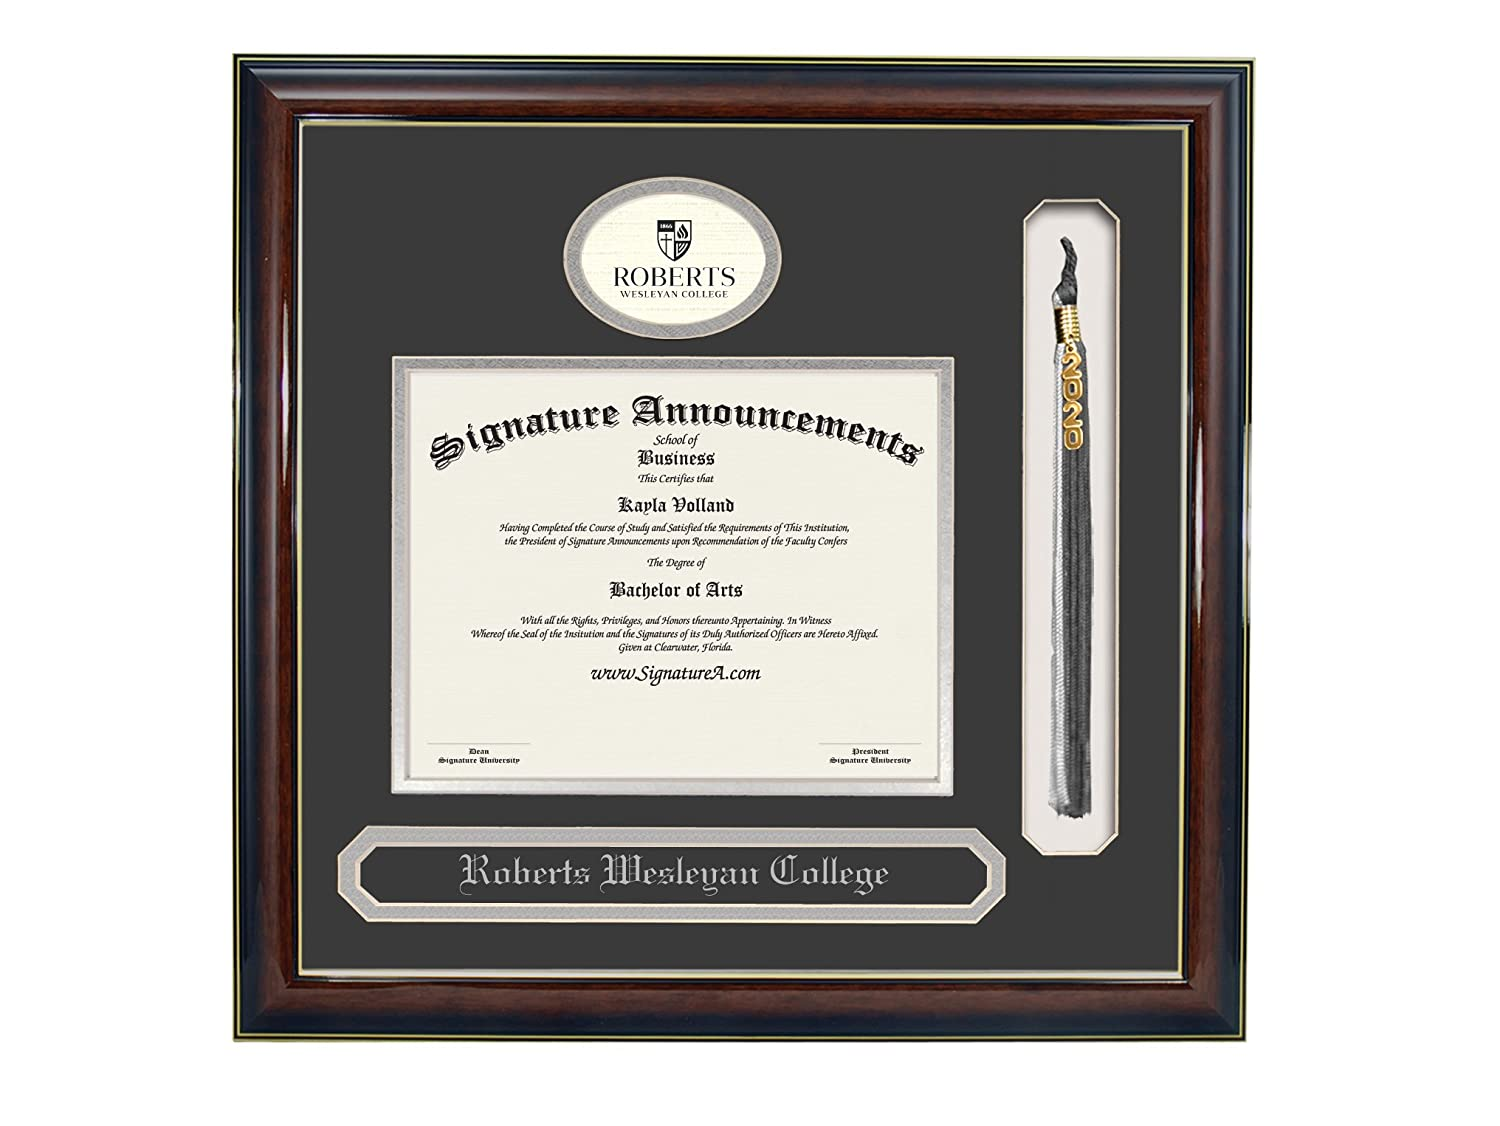 16 x 16 Name /& Tassel Graduation Diploma Frame Signature Announcements Roberts-Wesleyan-College Undergraduate Sculpted Foil Seal Gold Accent Gloss Mahogany